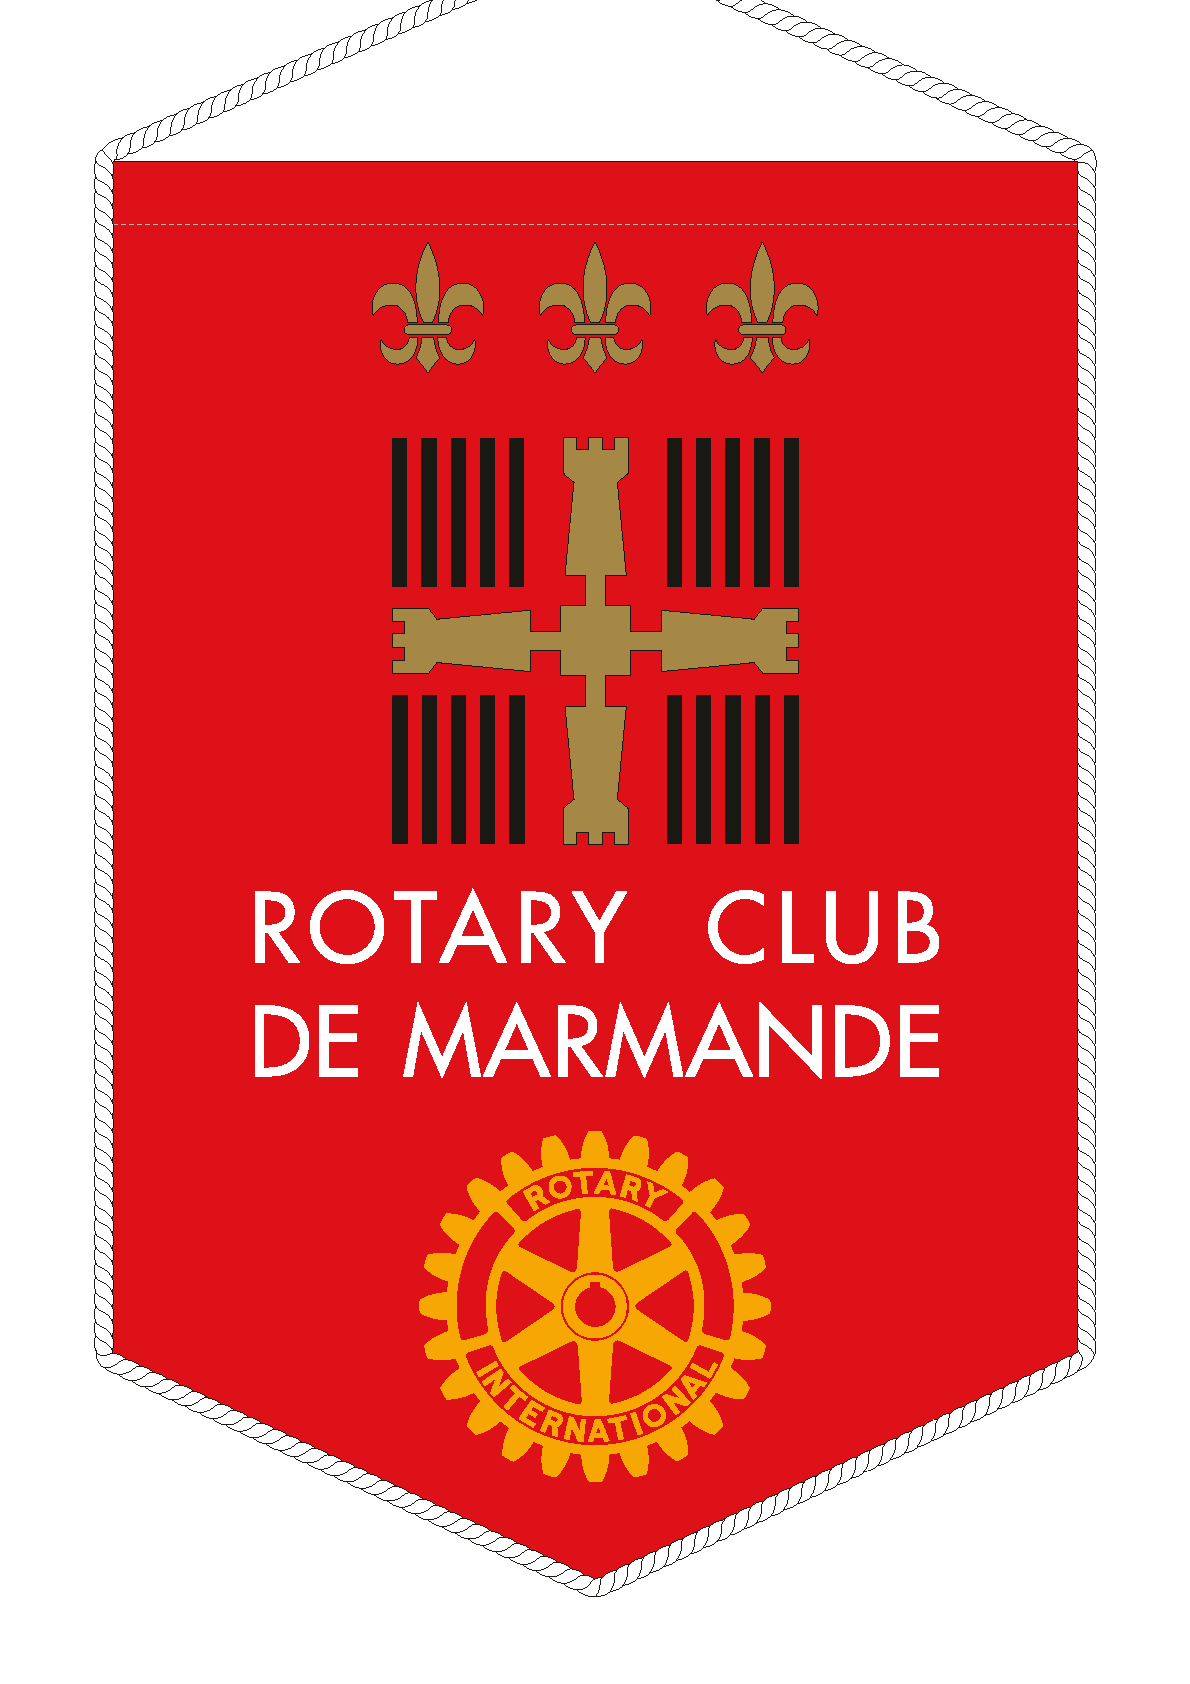 FANION ROTARY CLUB MARMANDE